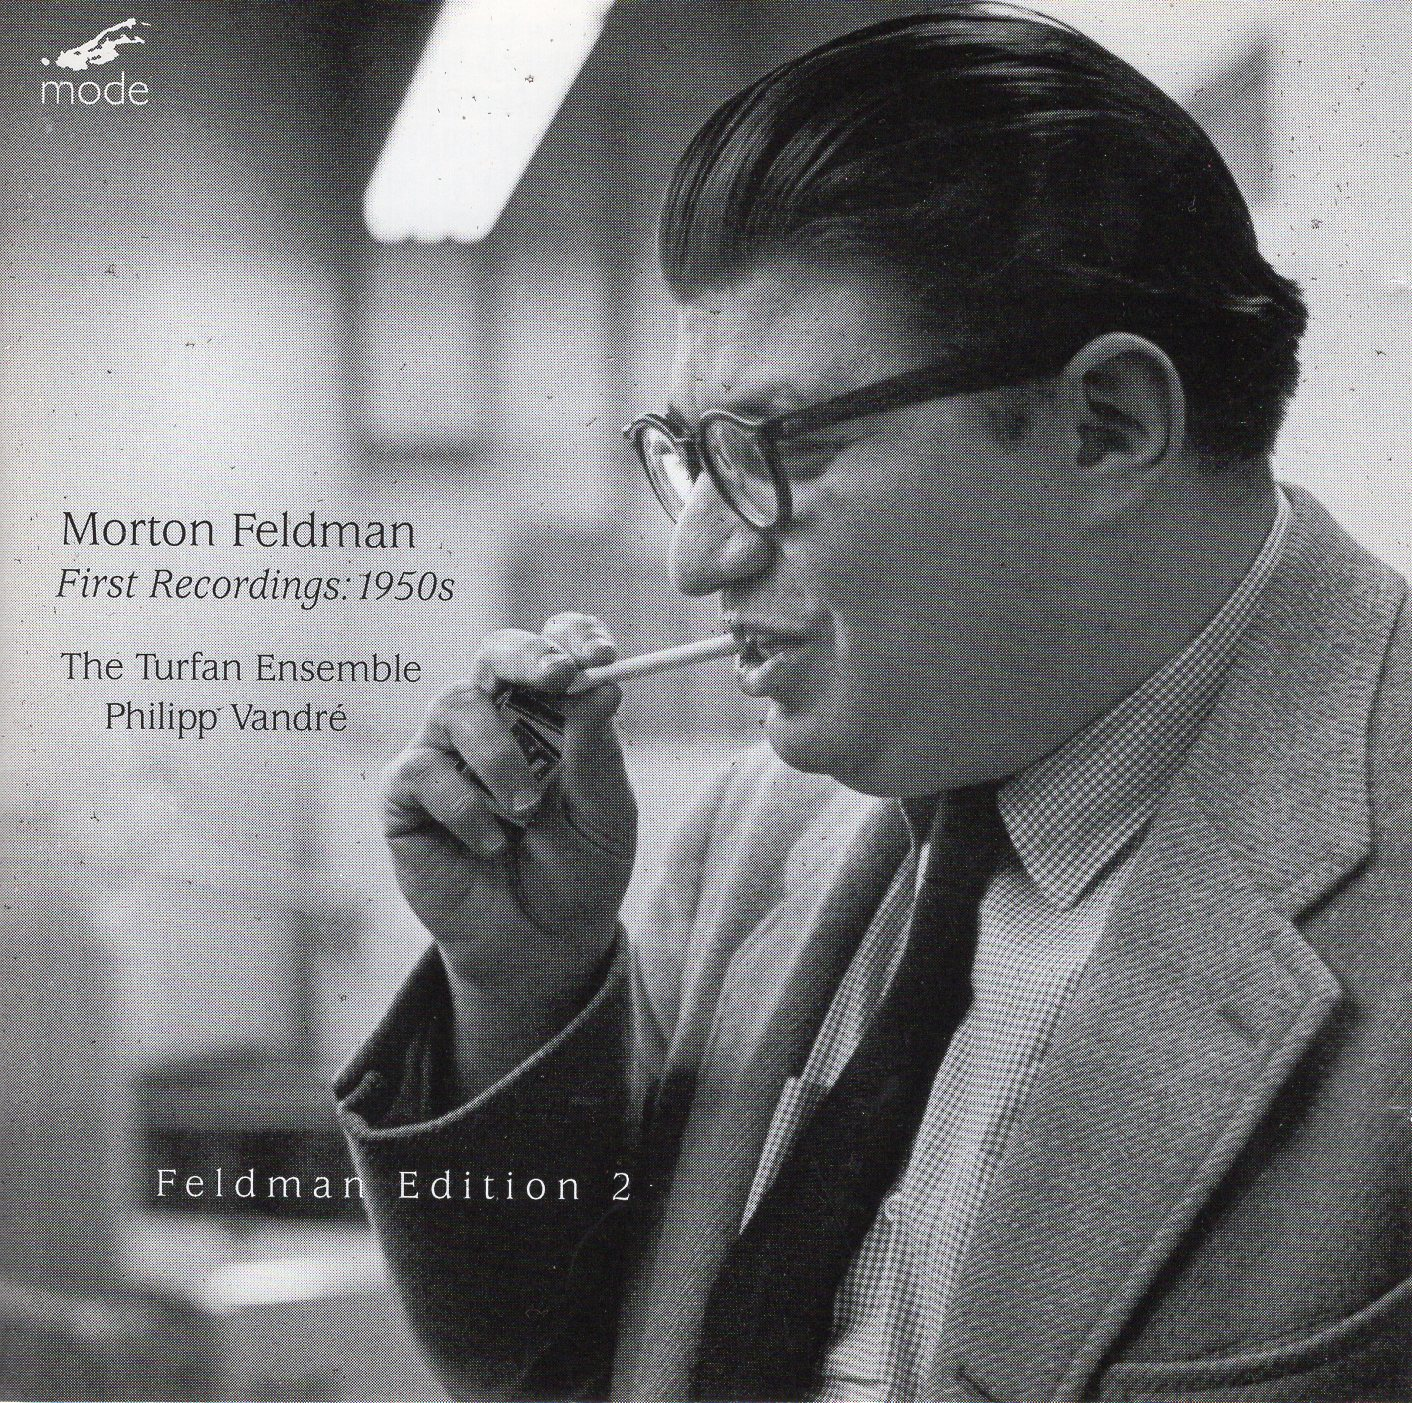 """Feldmen Edition 2 First Recordings: 1950s"" Morton Feldman"